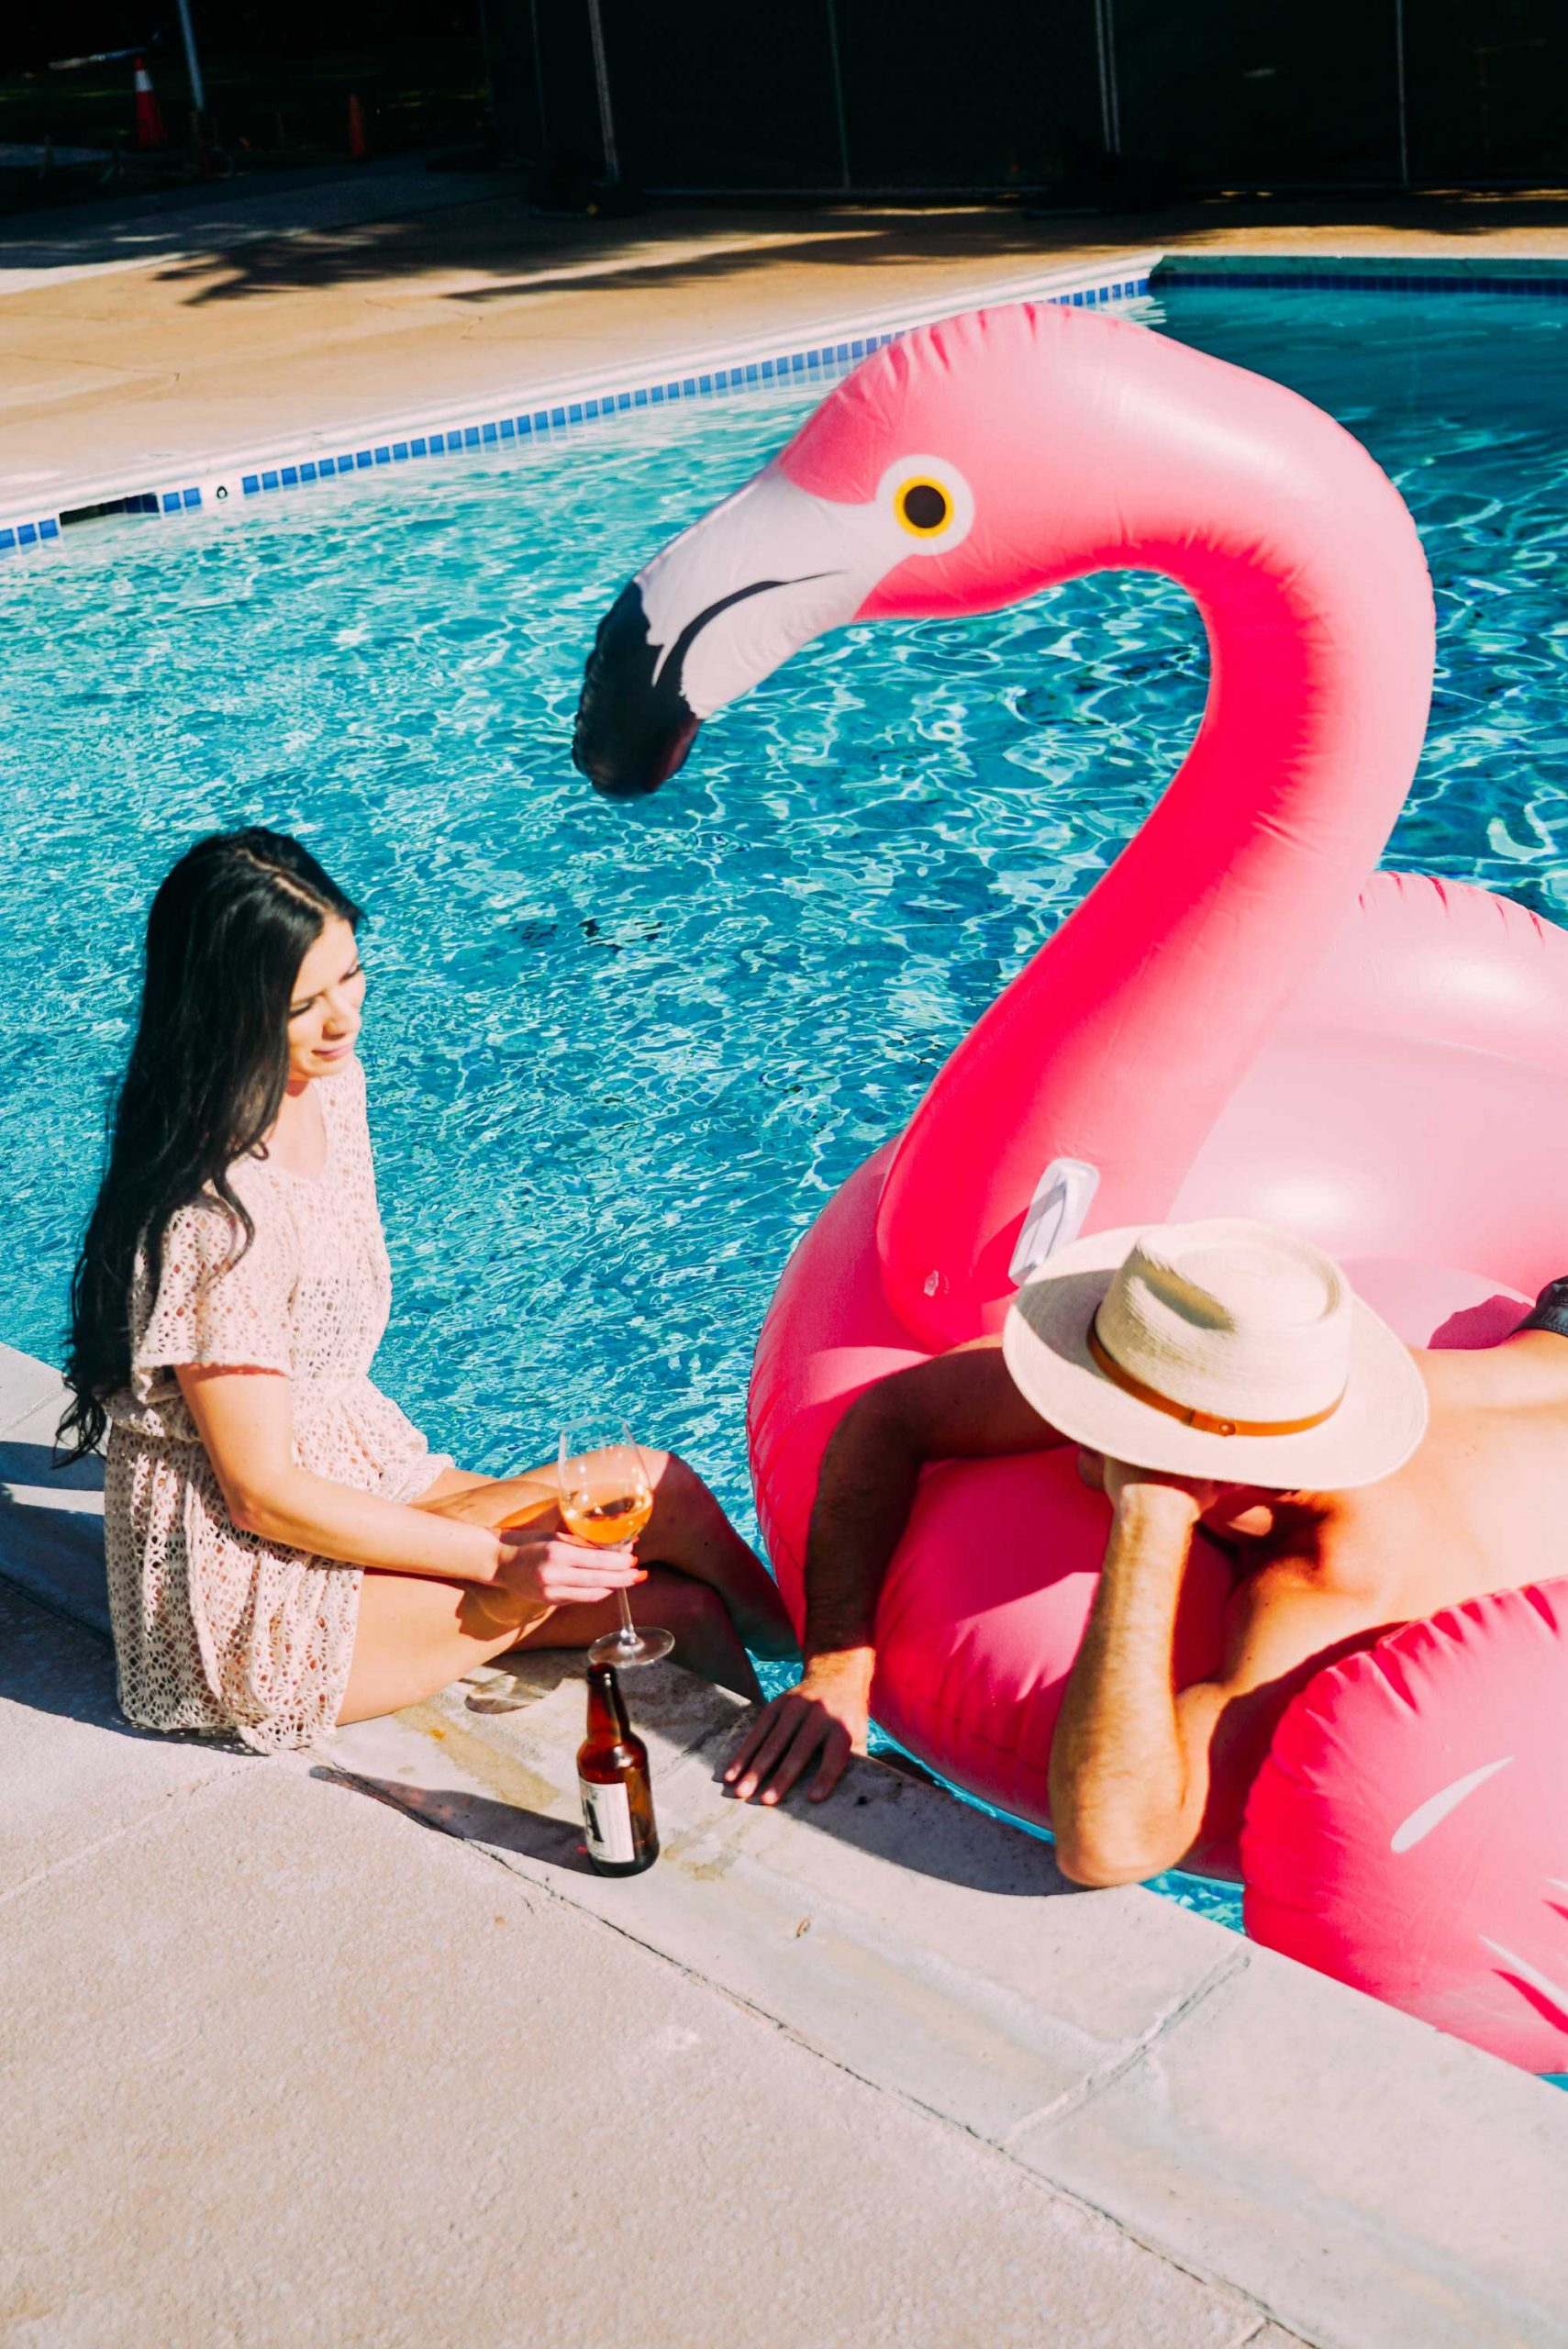 Two women sitting in a flamingo floatie in the pool